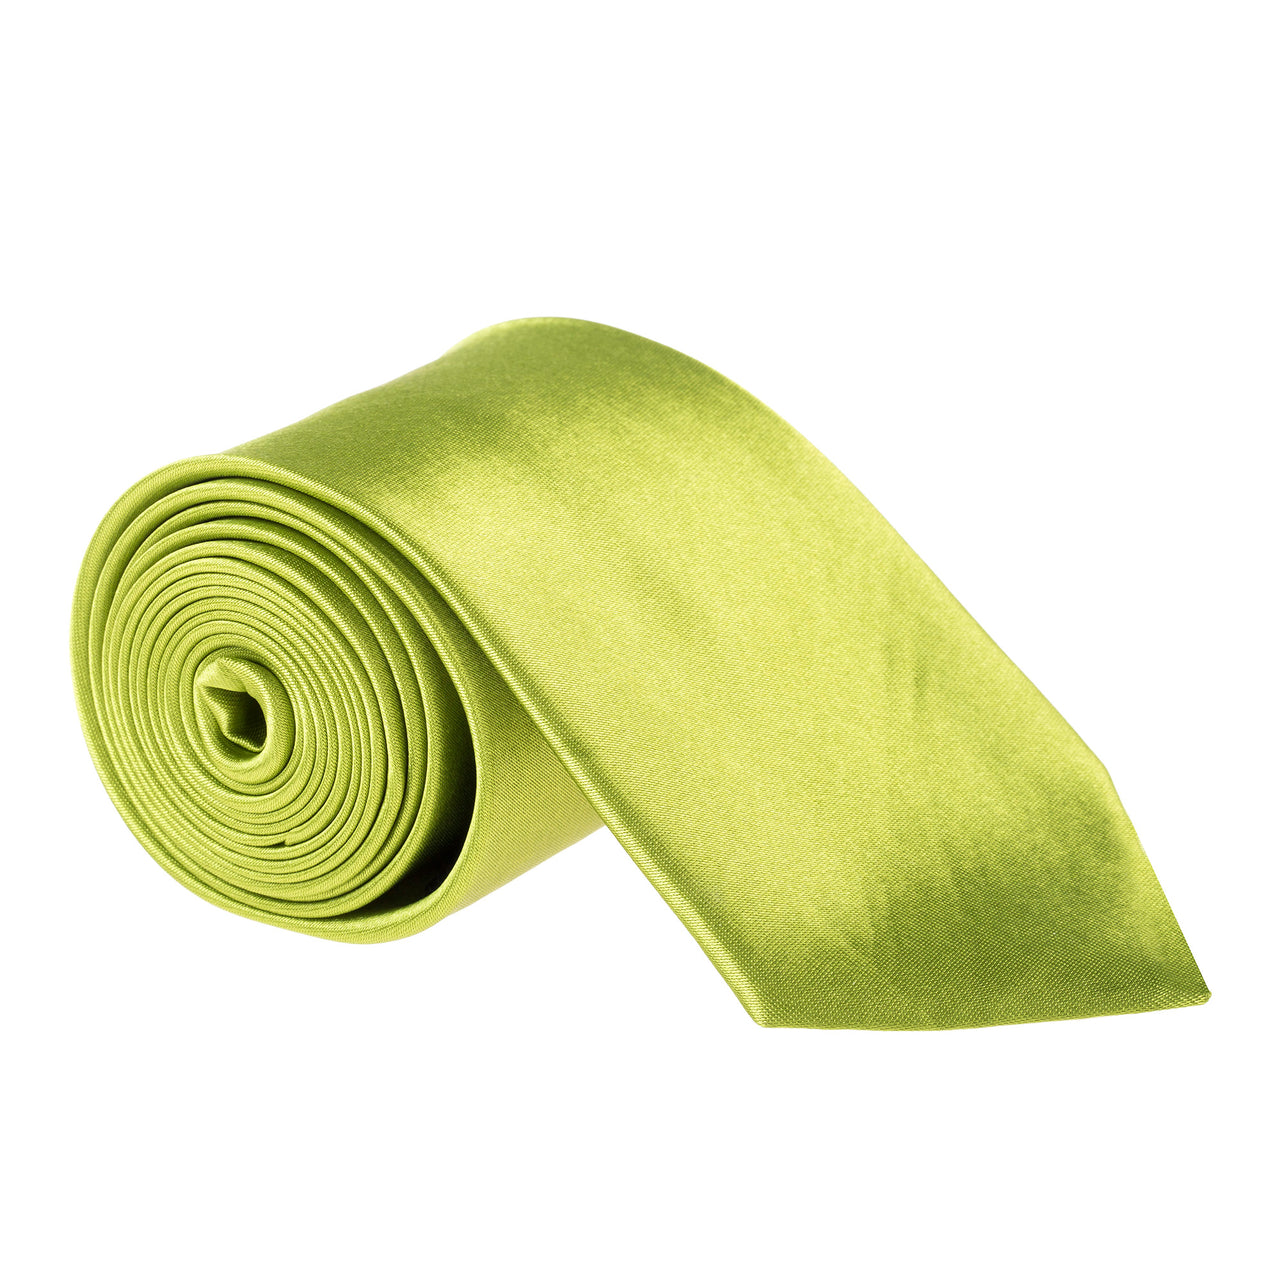 "Wide / Thick 3"" Plain Satin Tie - Apple Green"